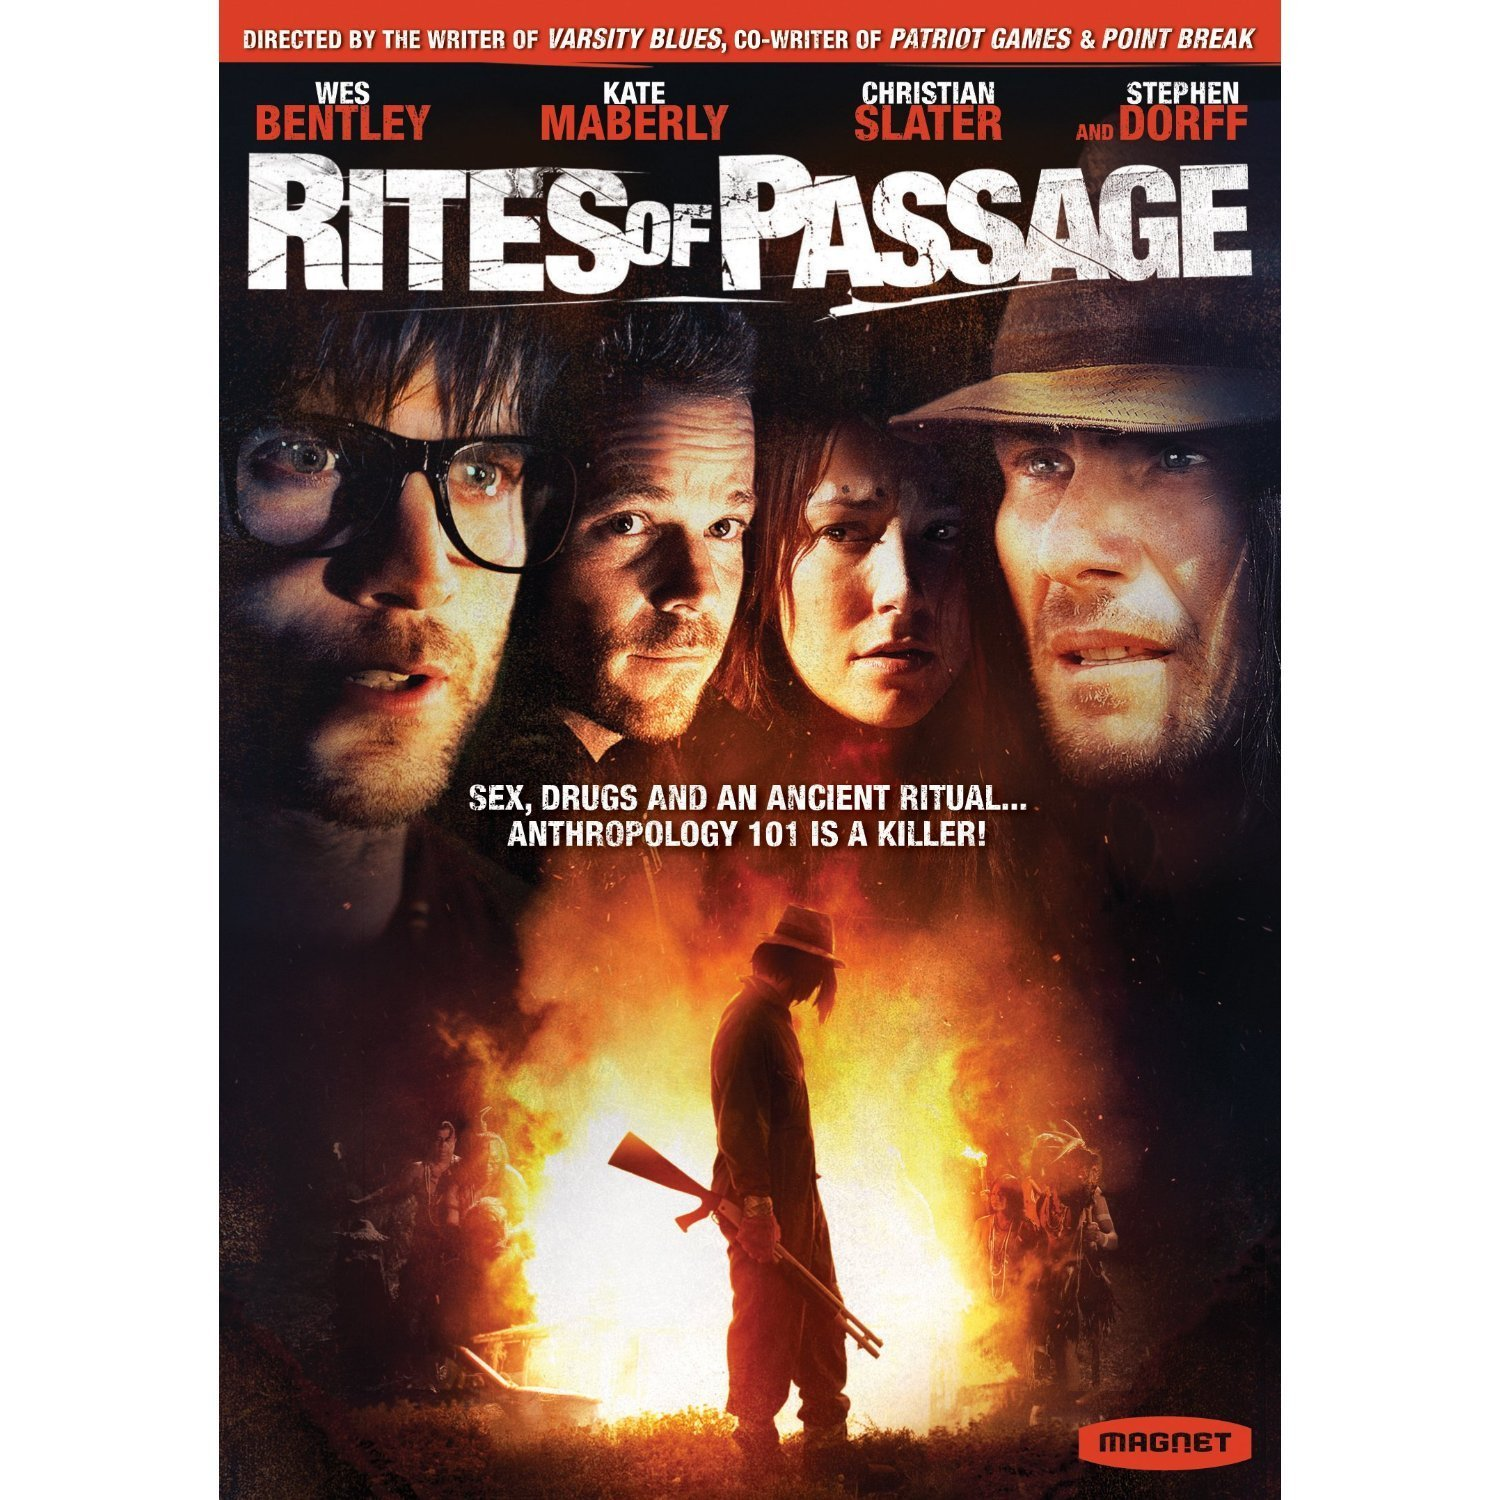 """the history of rites of passage Rites of passage are an important part of tradition and identity they create a sense of personhood within the family and the community it is obvious that today's society has """"watered-down"""" the true values that rites of passage can bring into the development and growth process of a young person."""